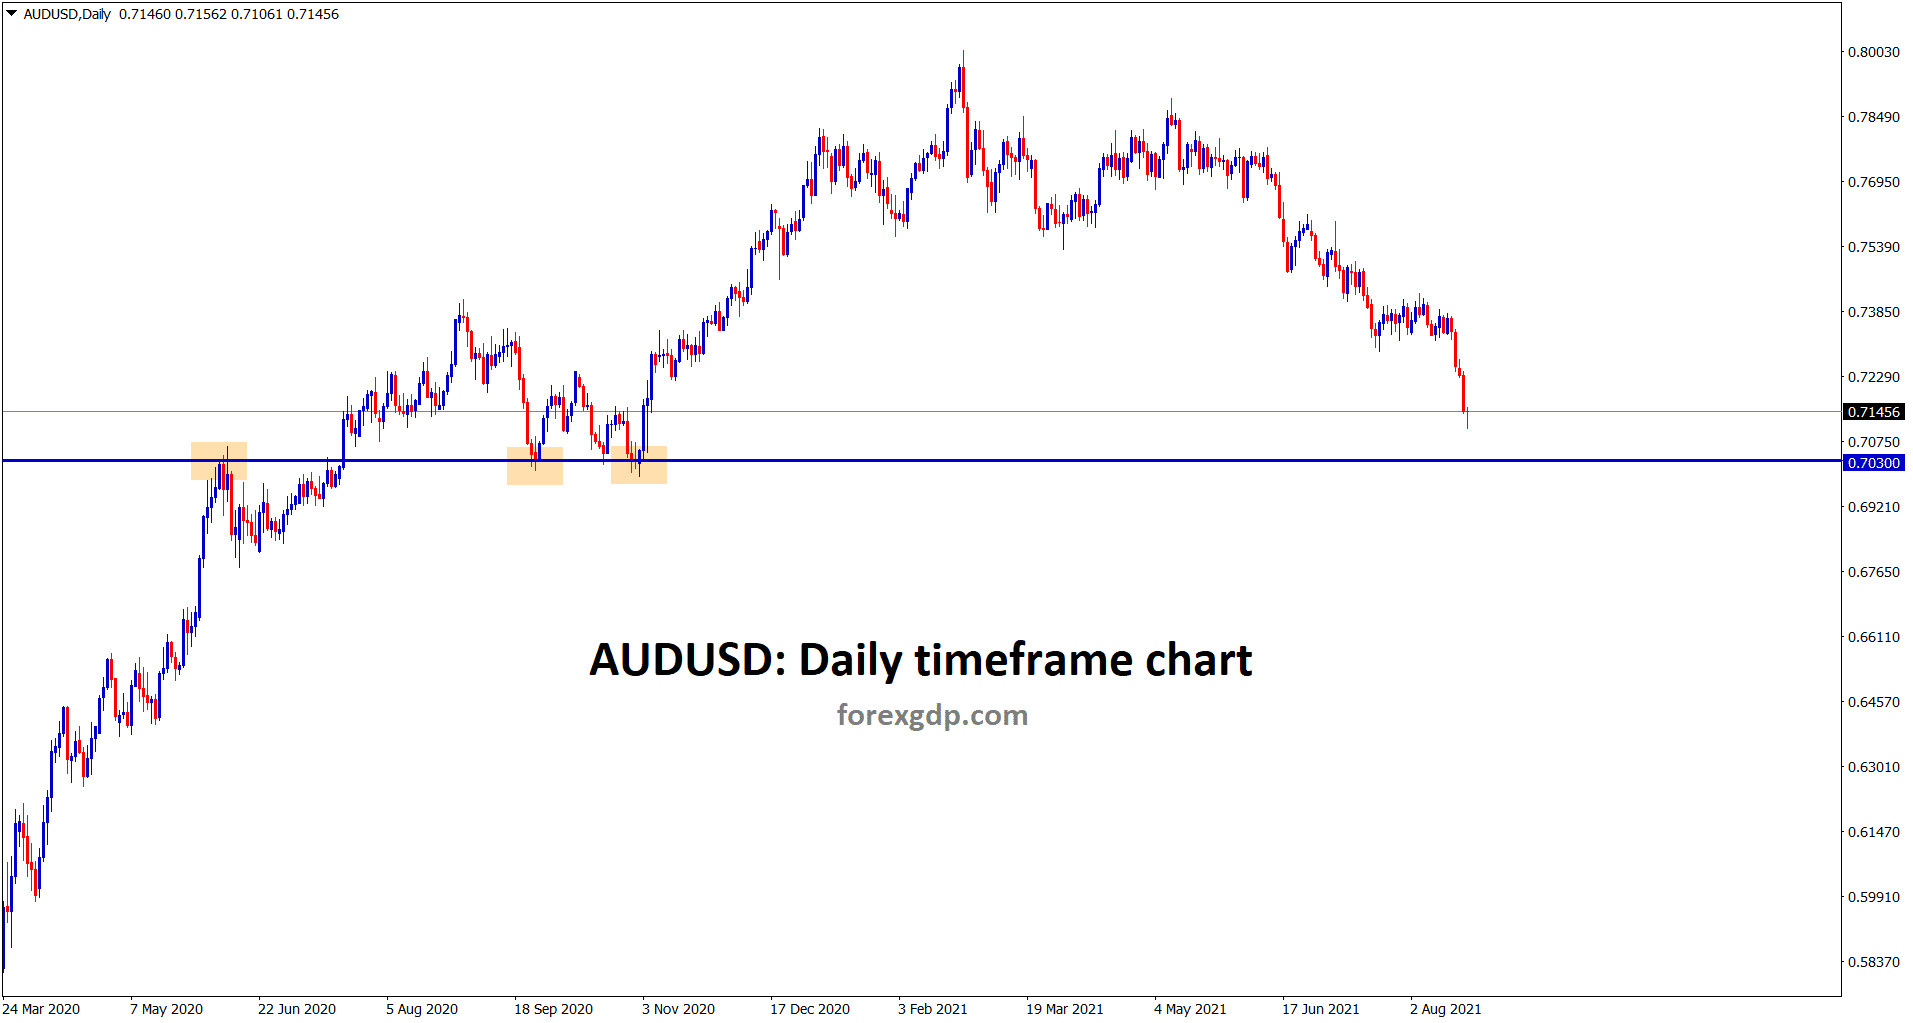 AUDUSD is falling continuously breaking the recent support areas the next support area is at 0.7030